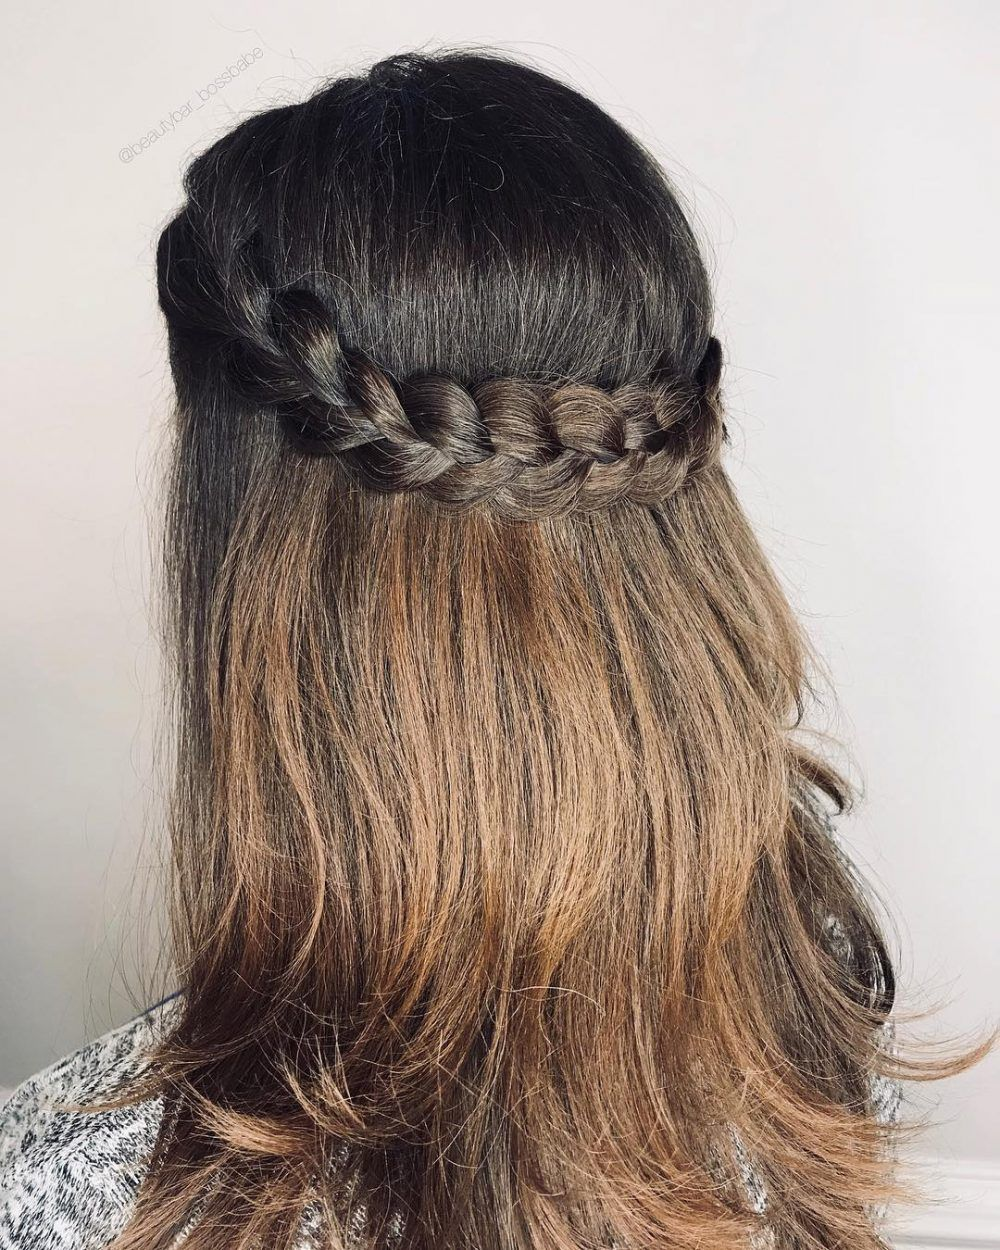 20 simple hairstyles that are super easy (trending in 2019